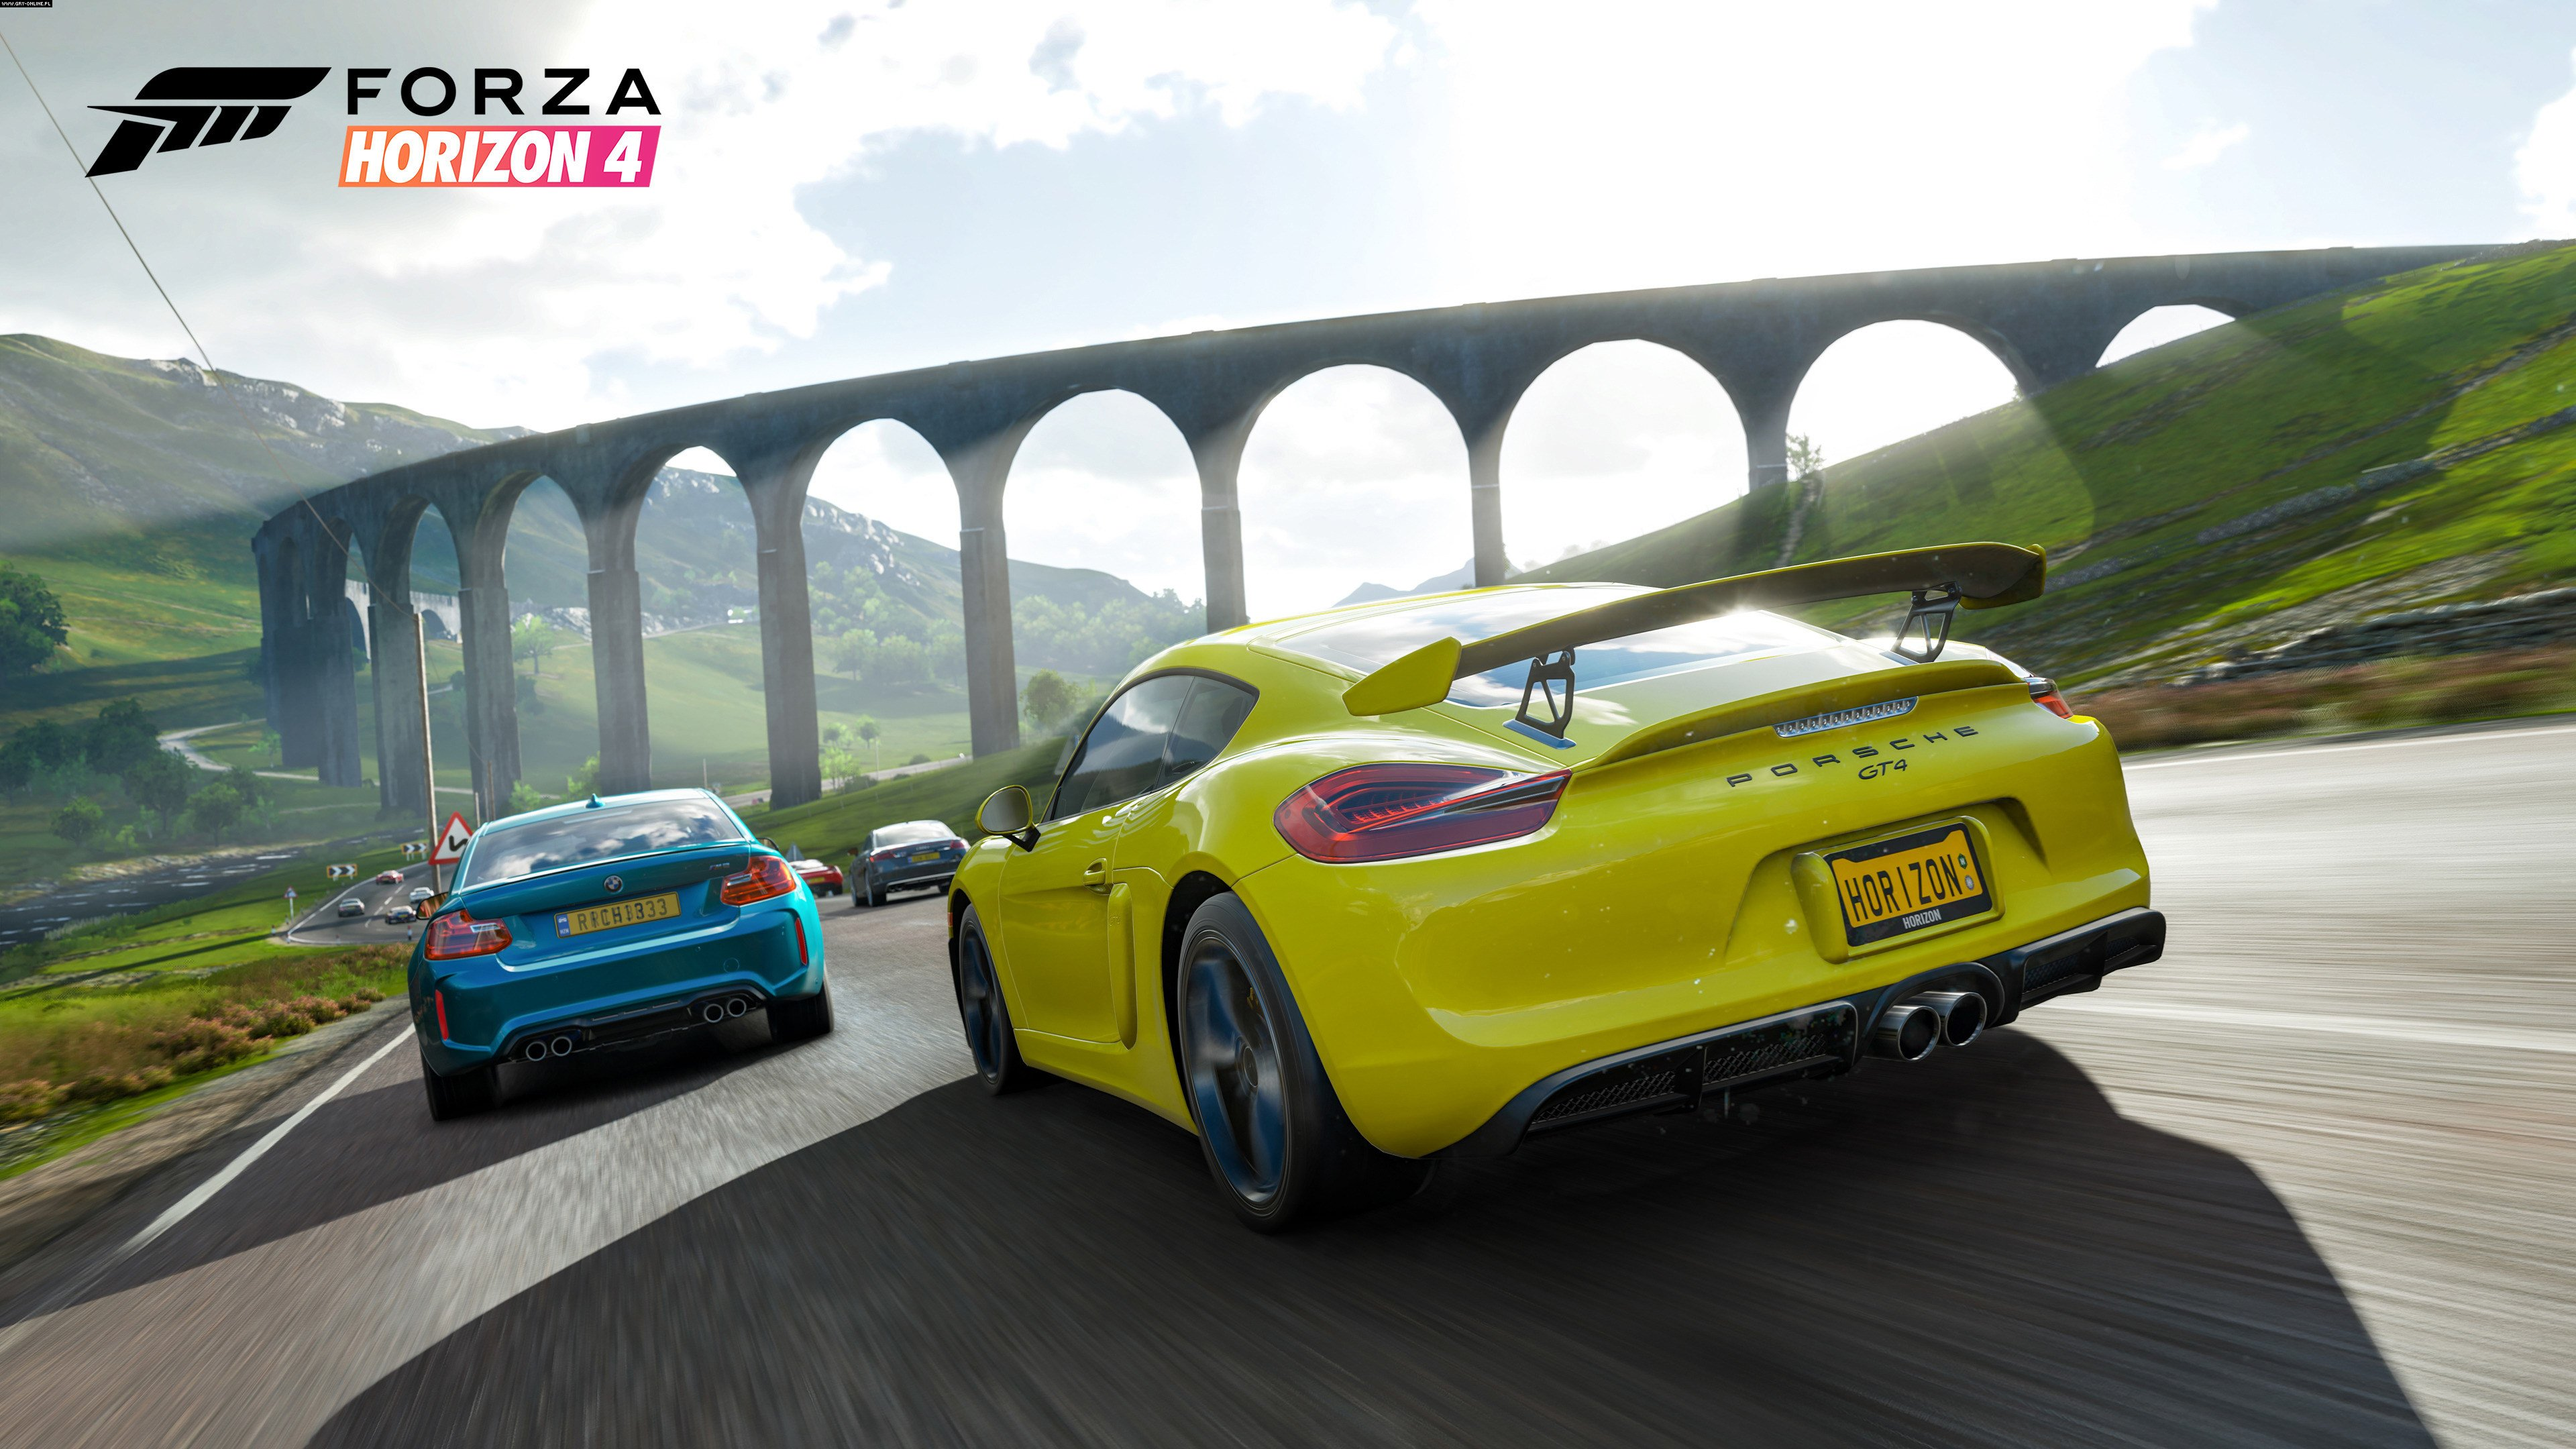 Forza Horizon 4 PC, XONE Gry Screen 1/41, Playground Games, Xbox Game Studios / Microsoft Studios